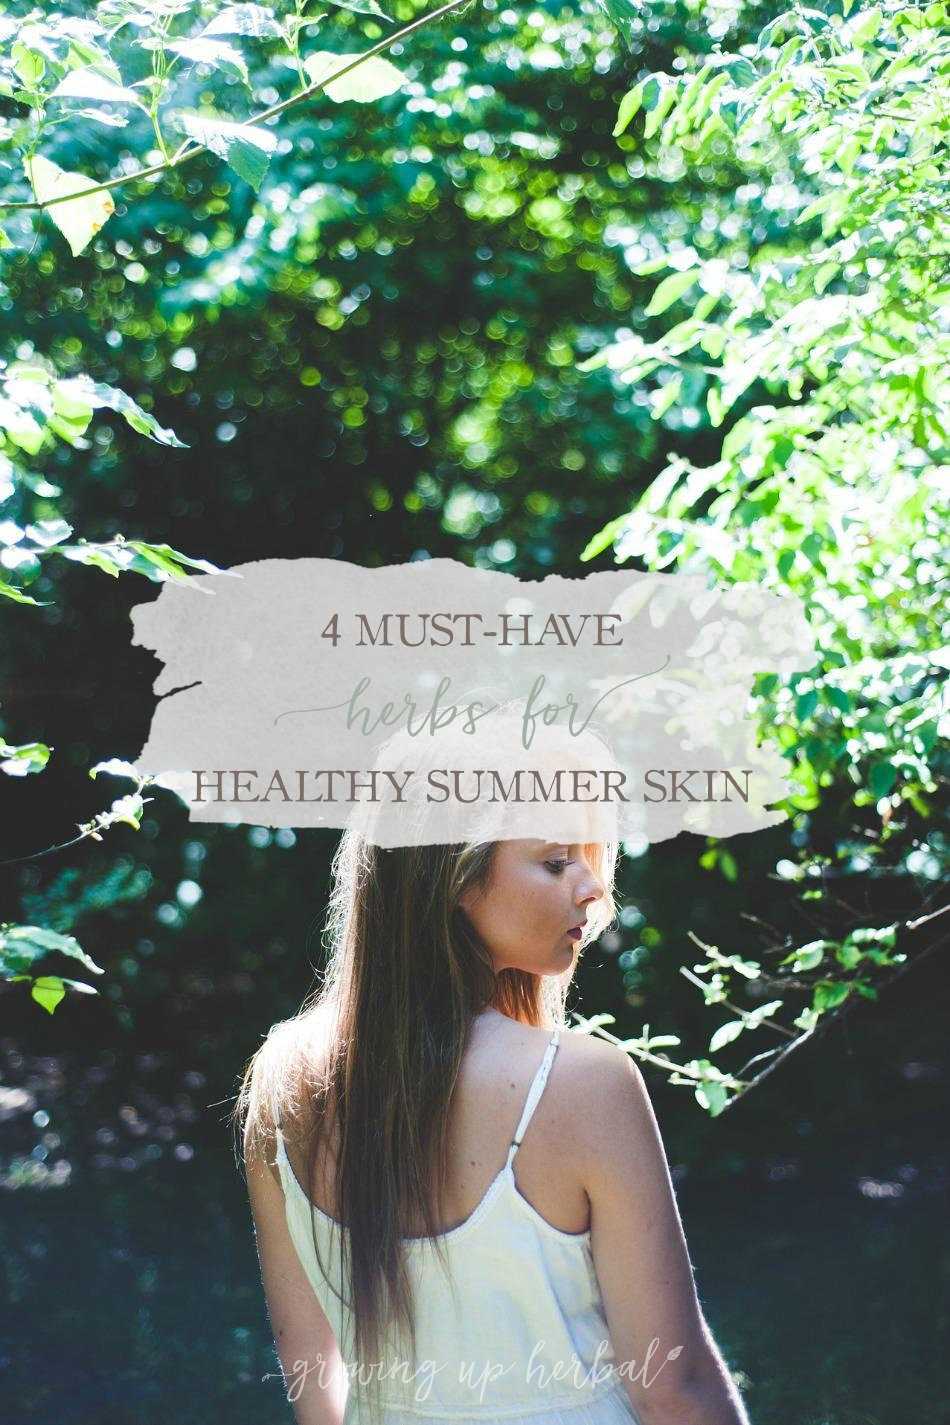 4 Must-Have Herbs For Healthy Summer Skin | Growing Up Herbal | Here are four herbs to use for healthy summer skin!